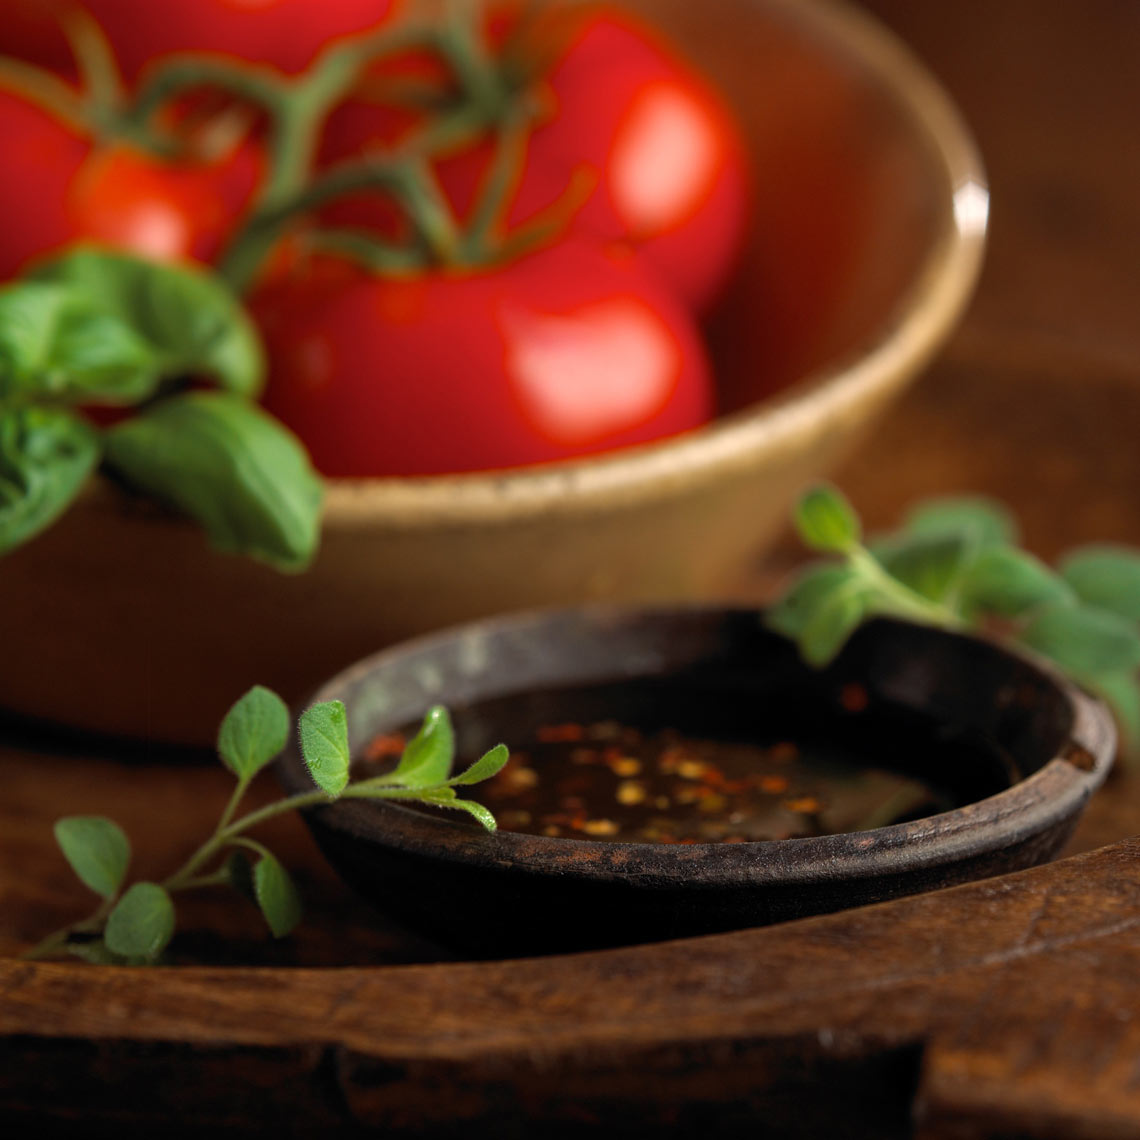 Ramekin of spiced vinaigrette dressing with sprigs of thyme, and bowl of tomatoes Food photography, InsideOut Studios.